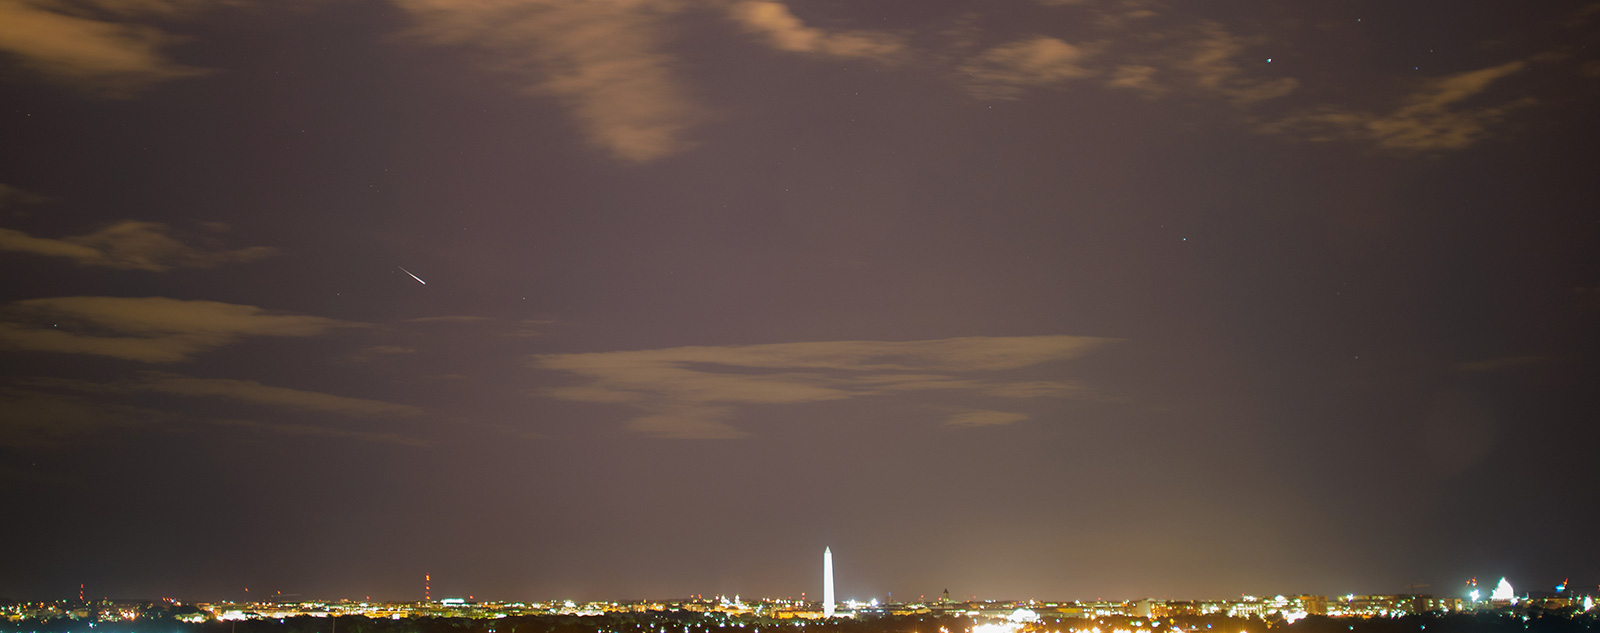 Meteor streak over Washington, DC.